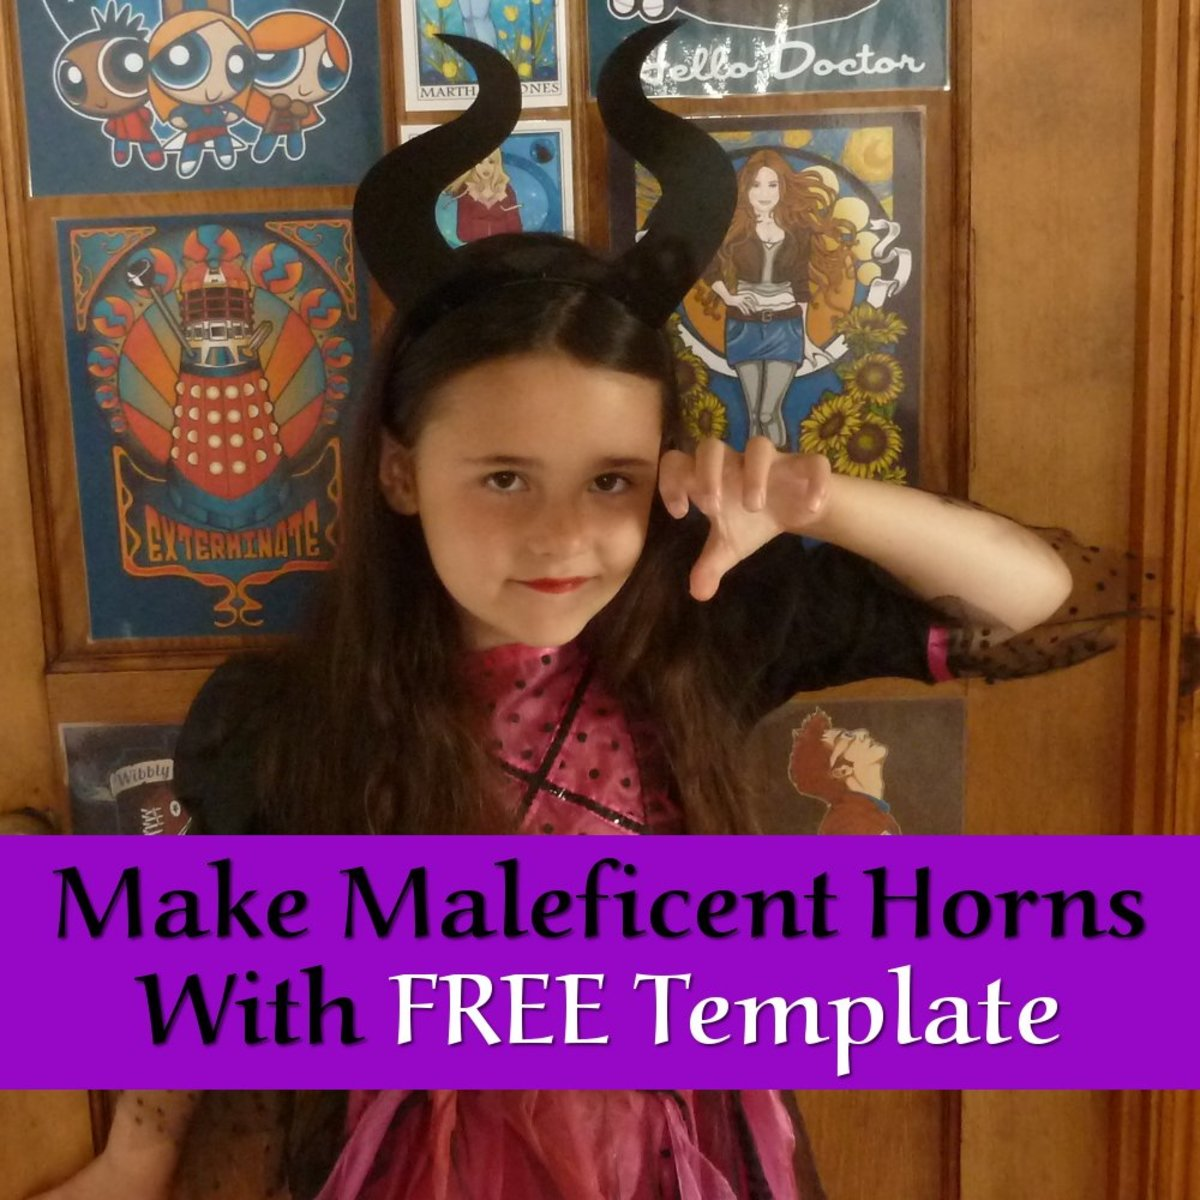 How to Make Maleficent Horns (With Free Template)